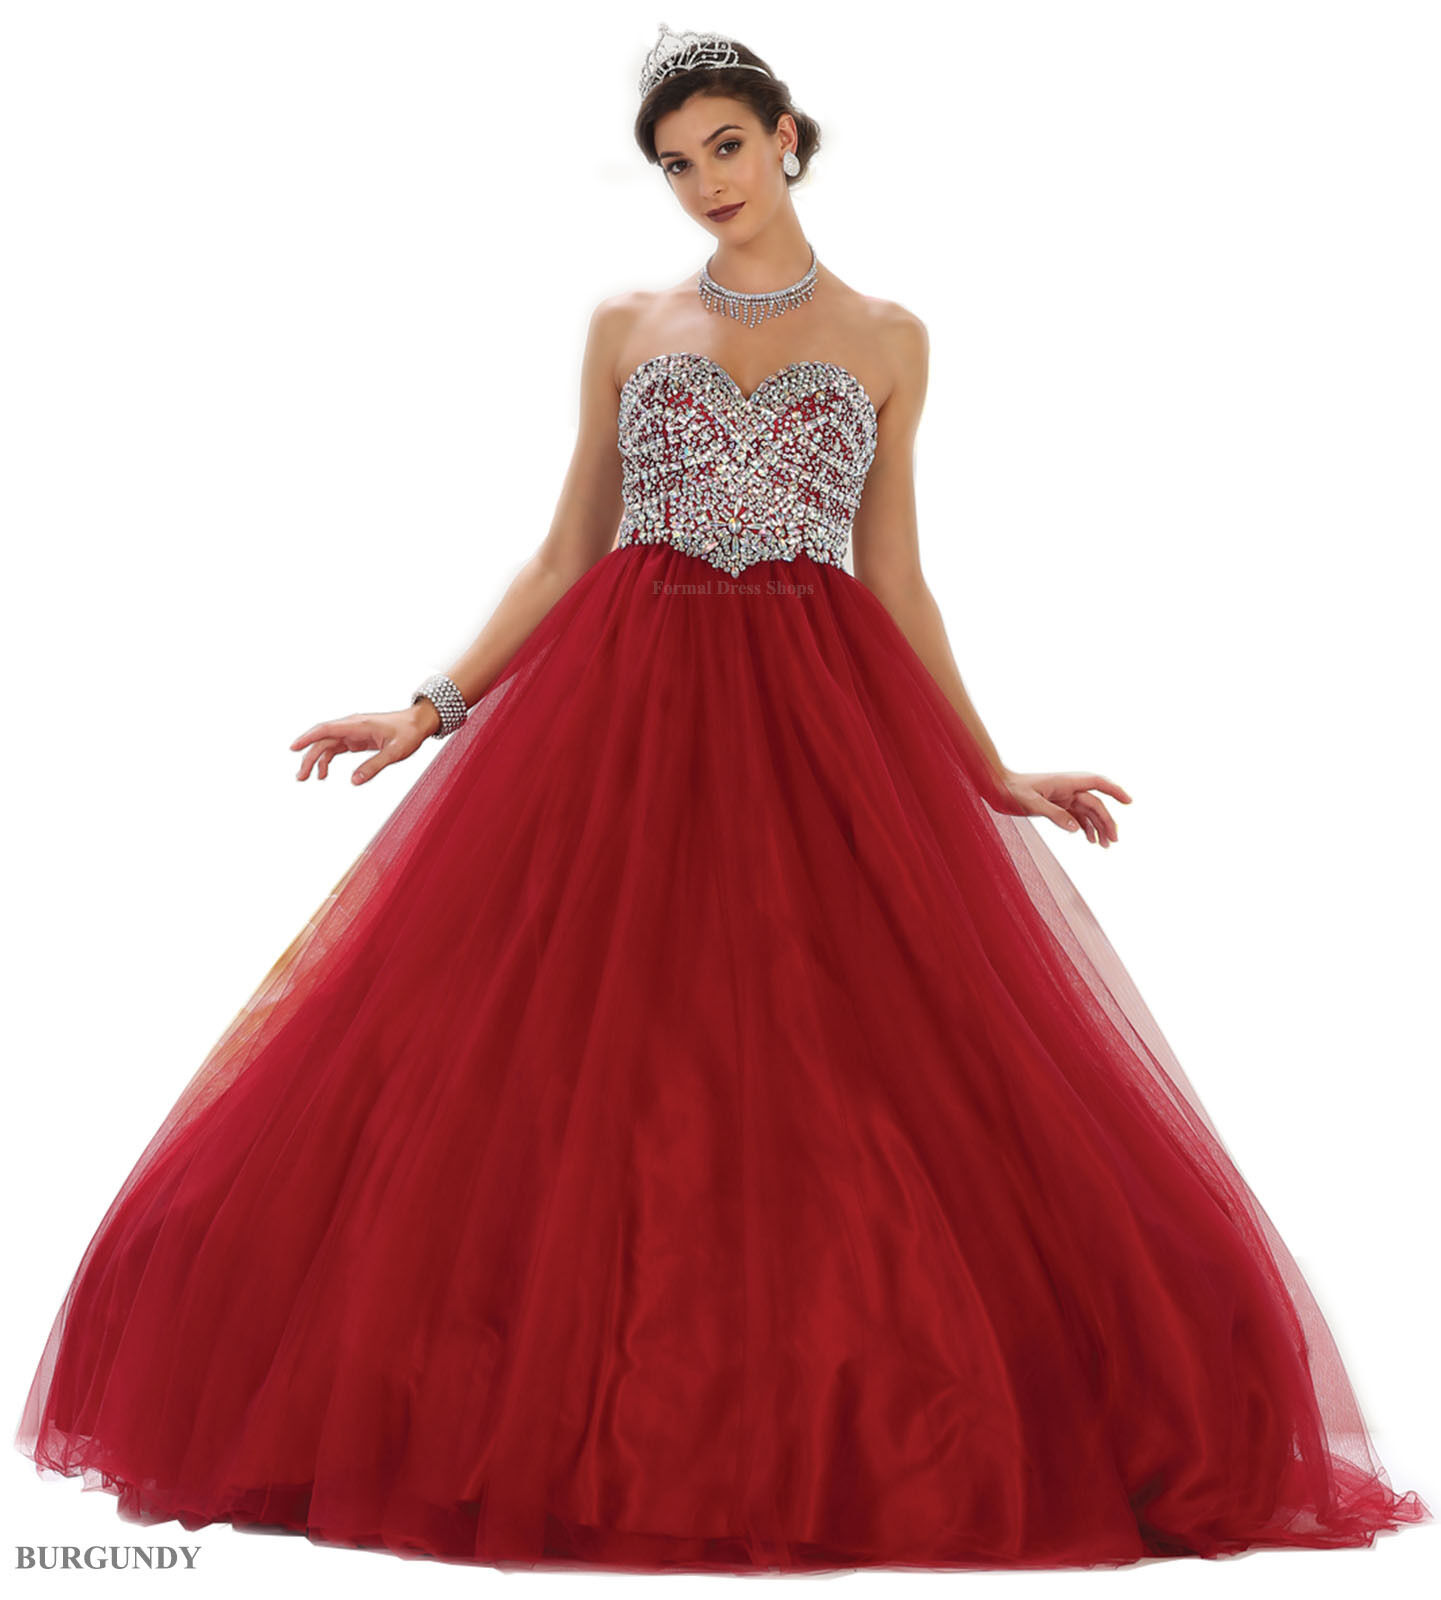 Sale new sweet 16 party dress quinceanera pageant prom - Designer red carpet dresses ...